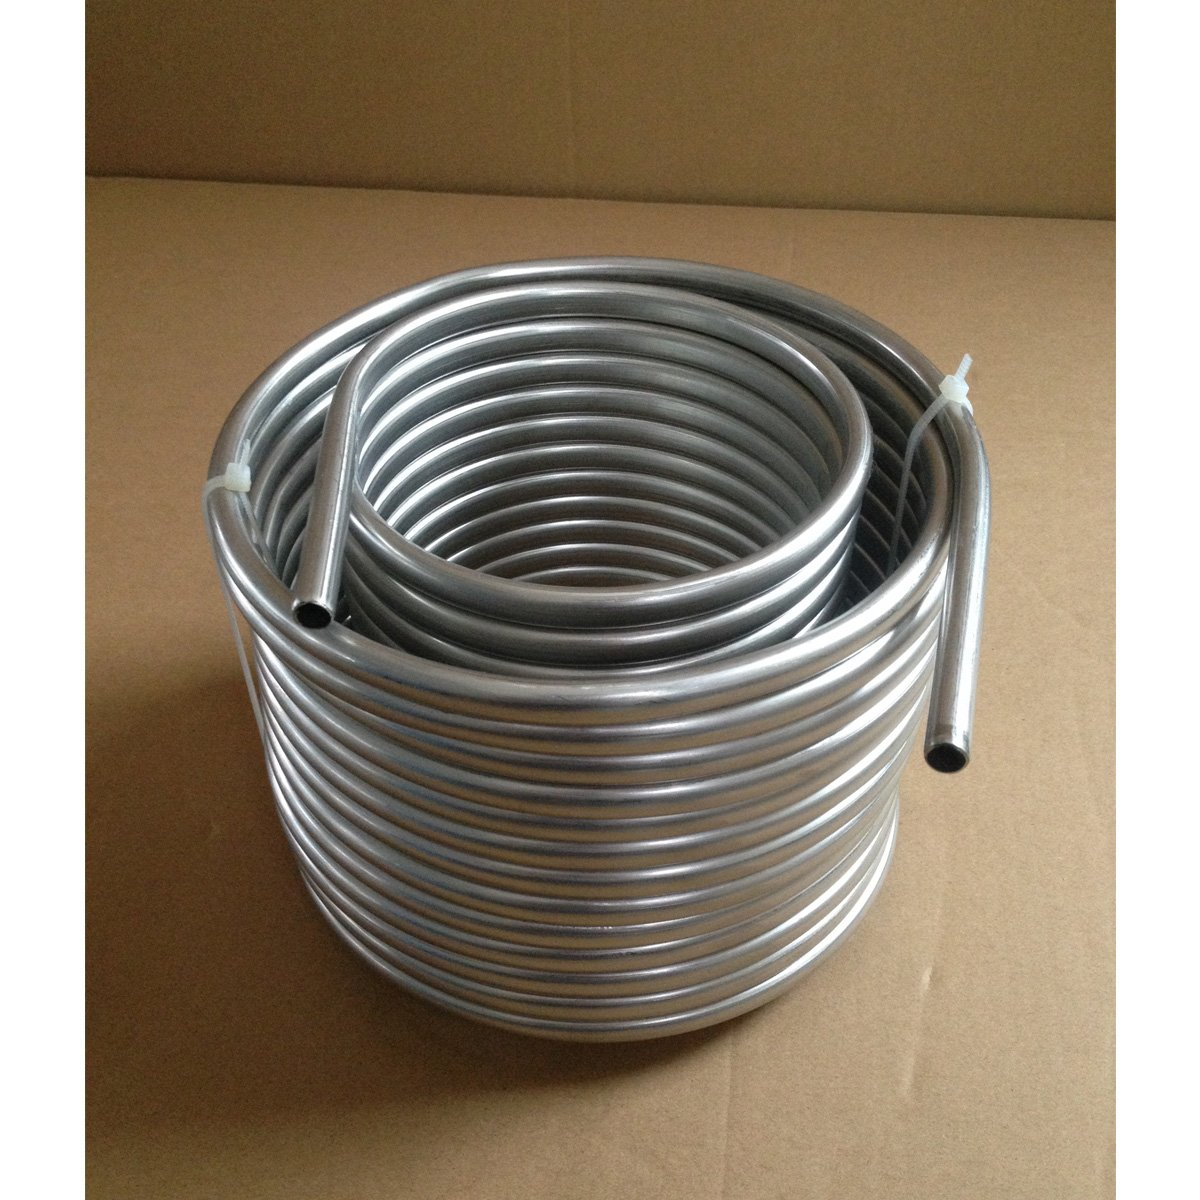 Cooling Coil Pipe, SENREAL Super Efficient Stainless Steel Cooling Coil Home Brewing Wort Chiller Pipe-#1 by SENREAL (Image #7)